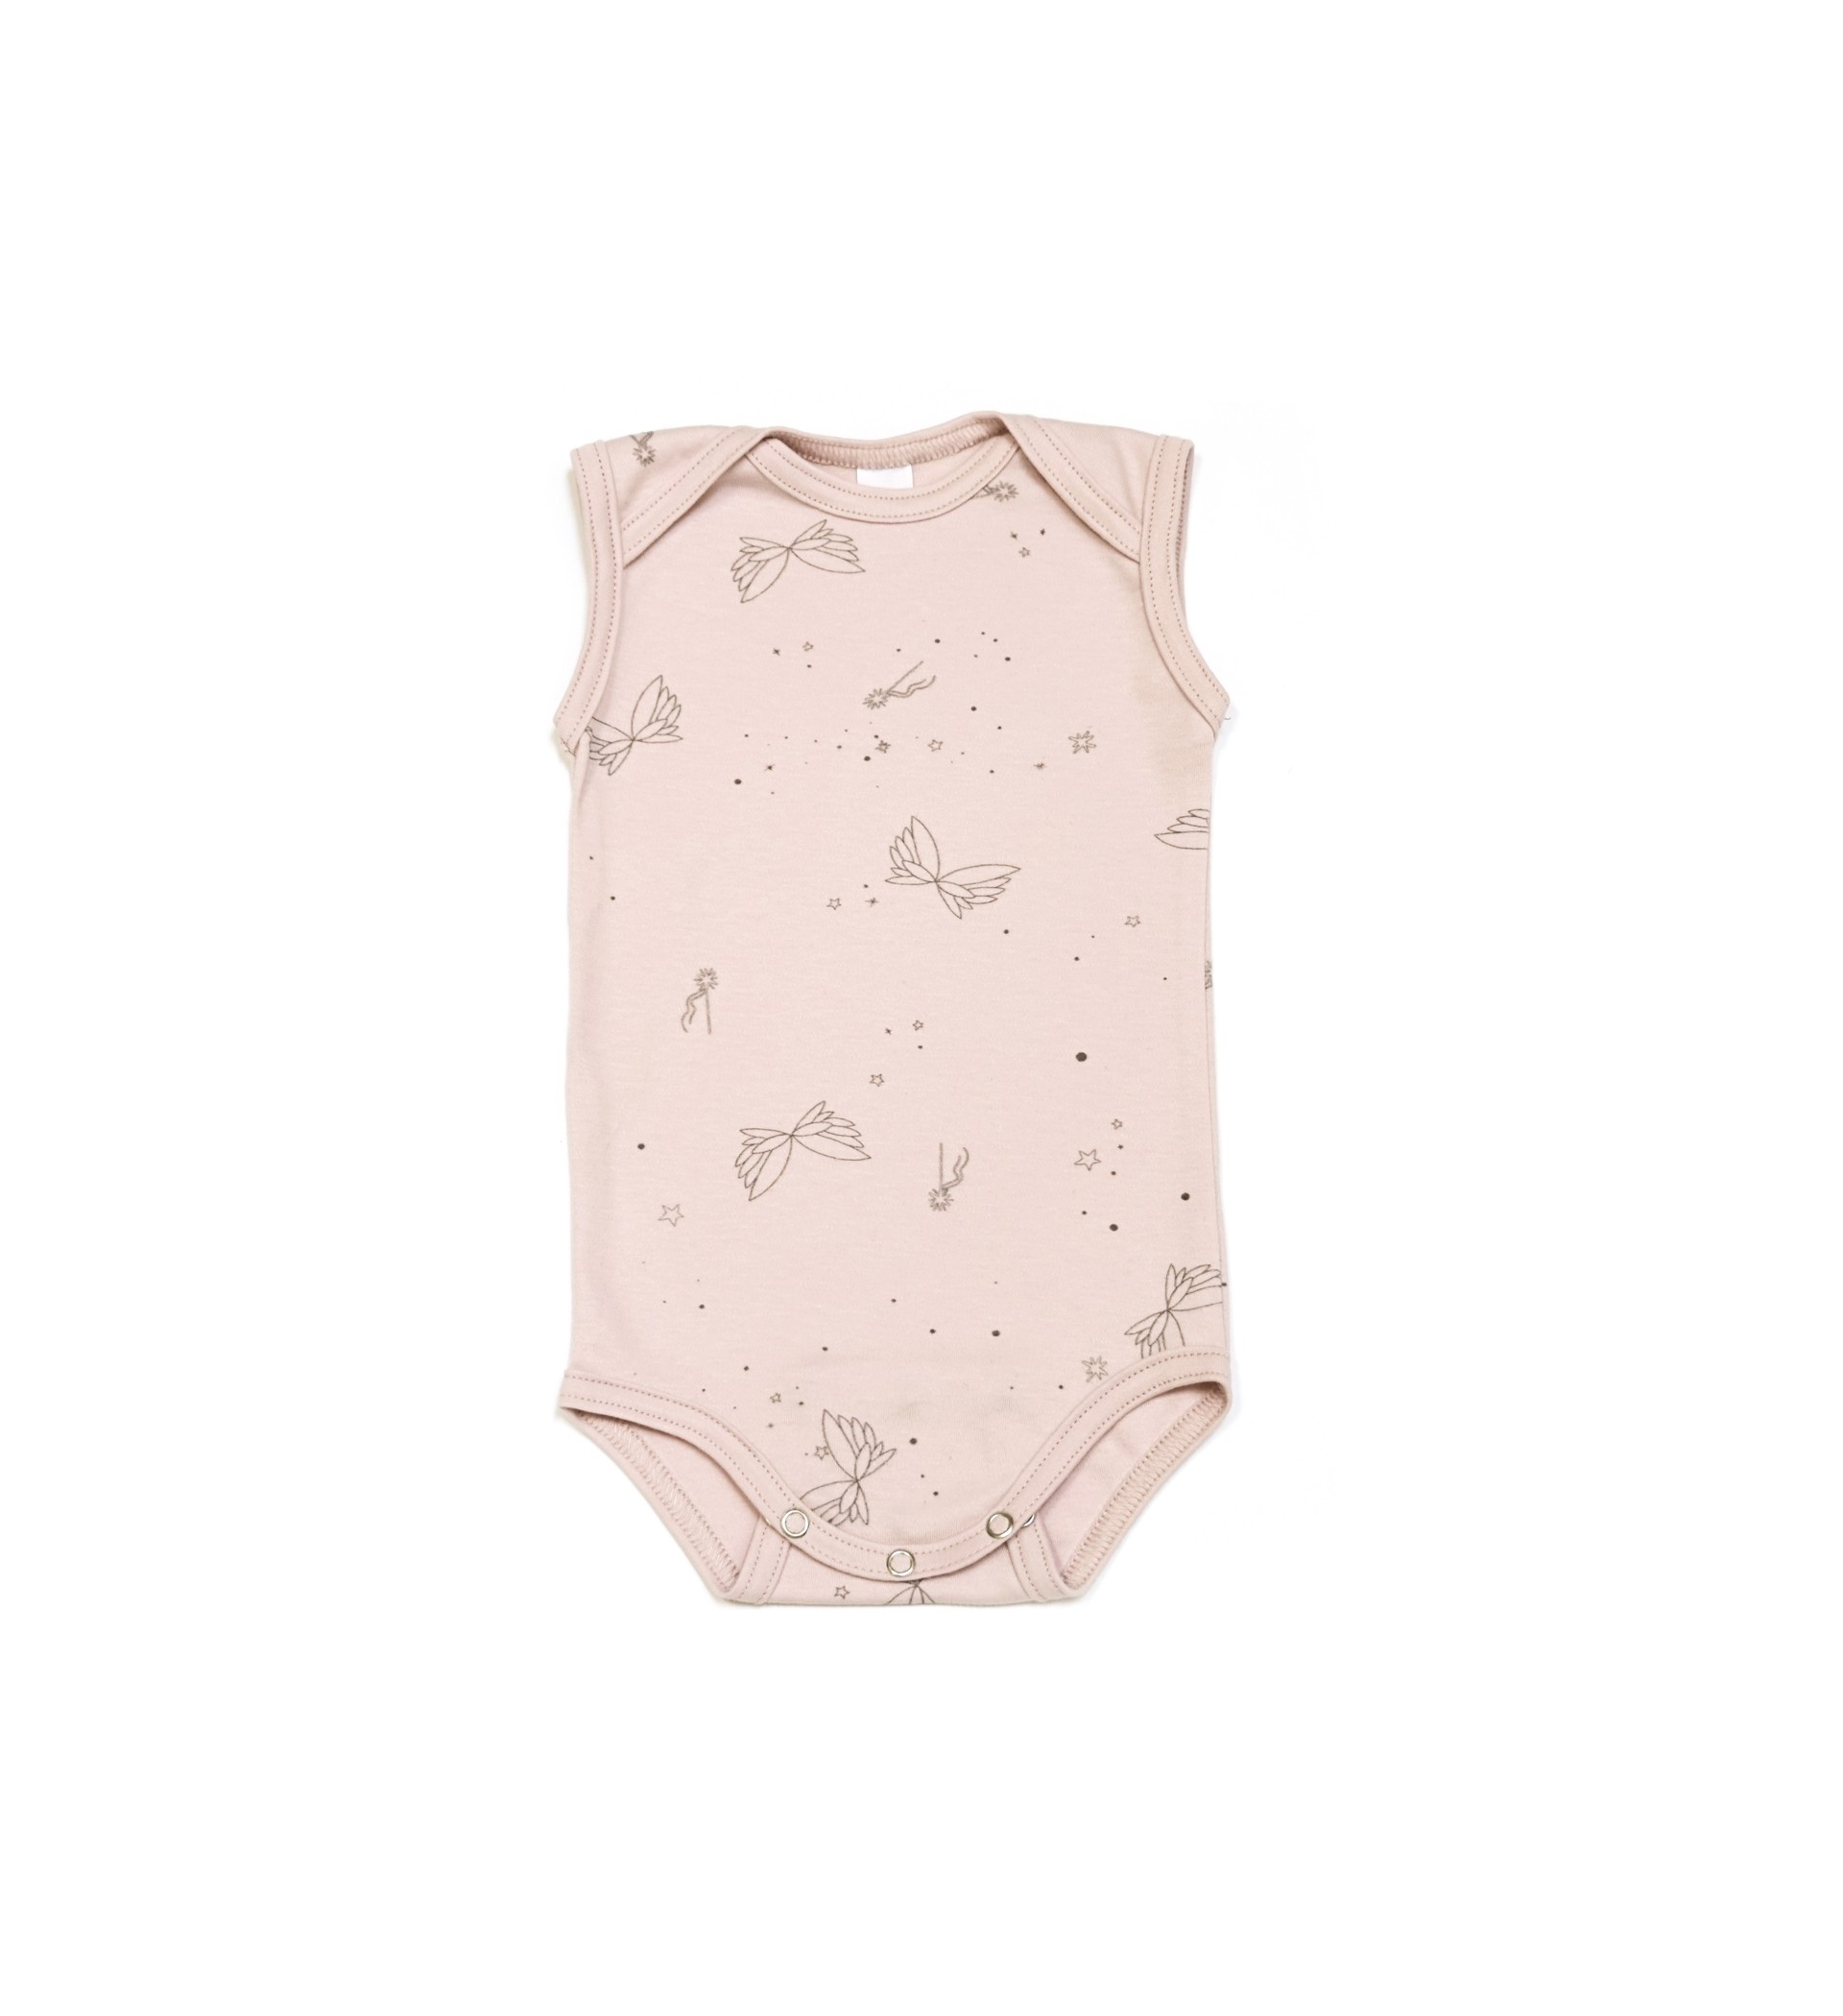 Baobaby body BR – Pixie world